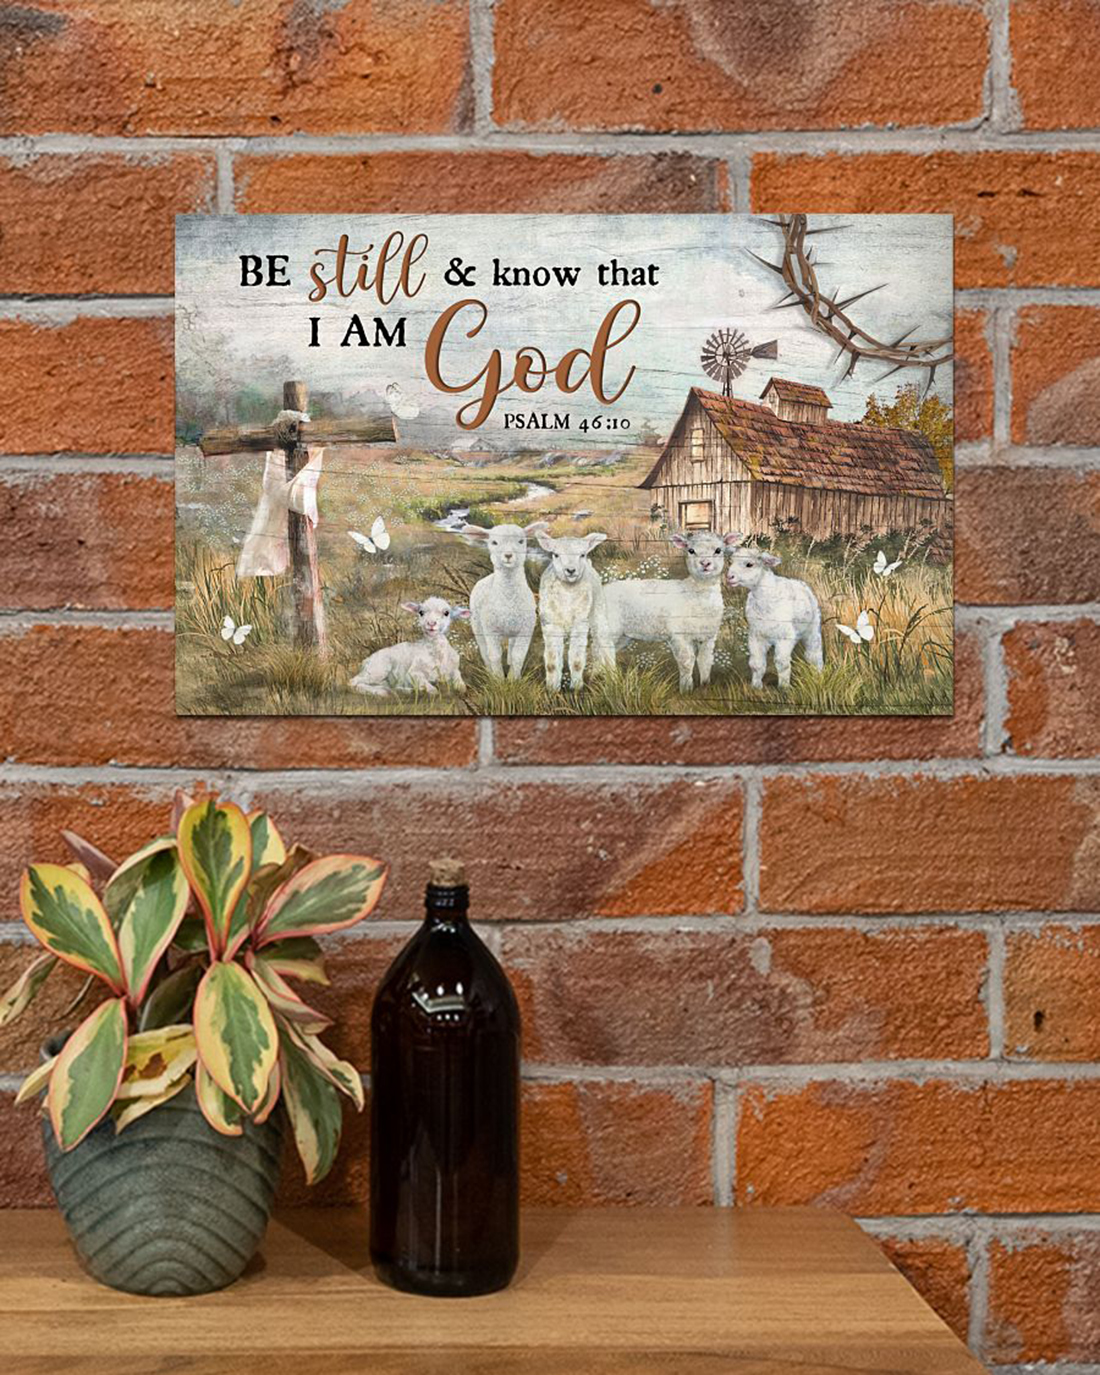 Lamb Be still and know that I am god poster